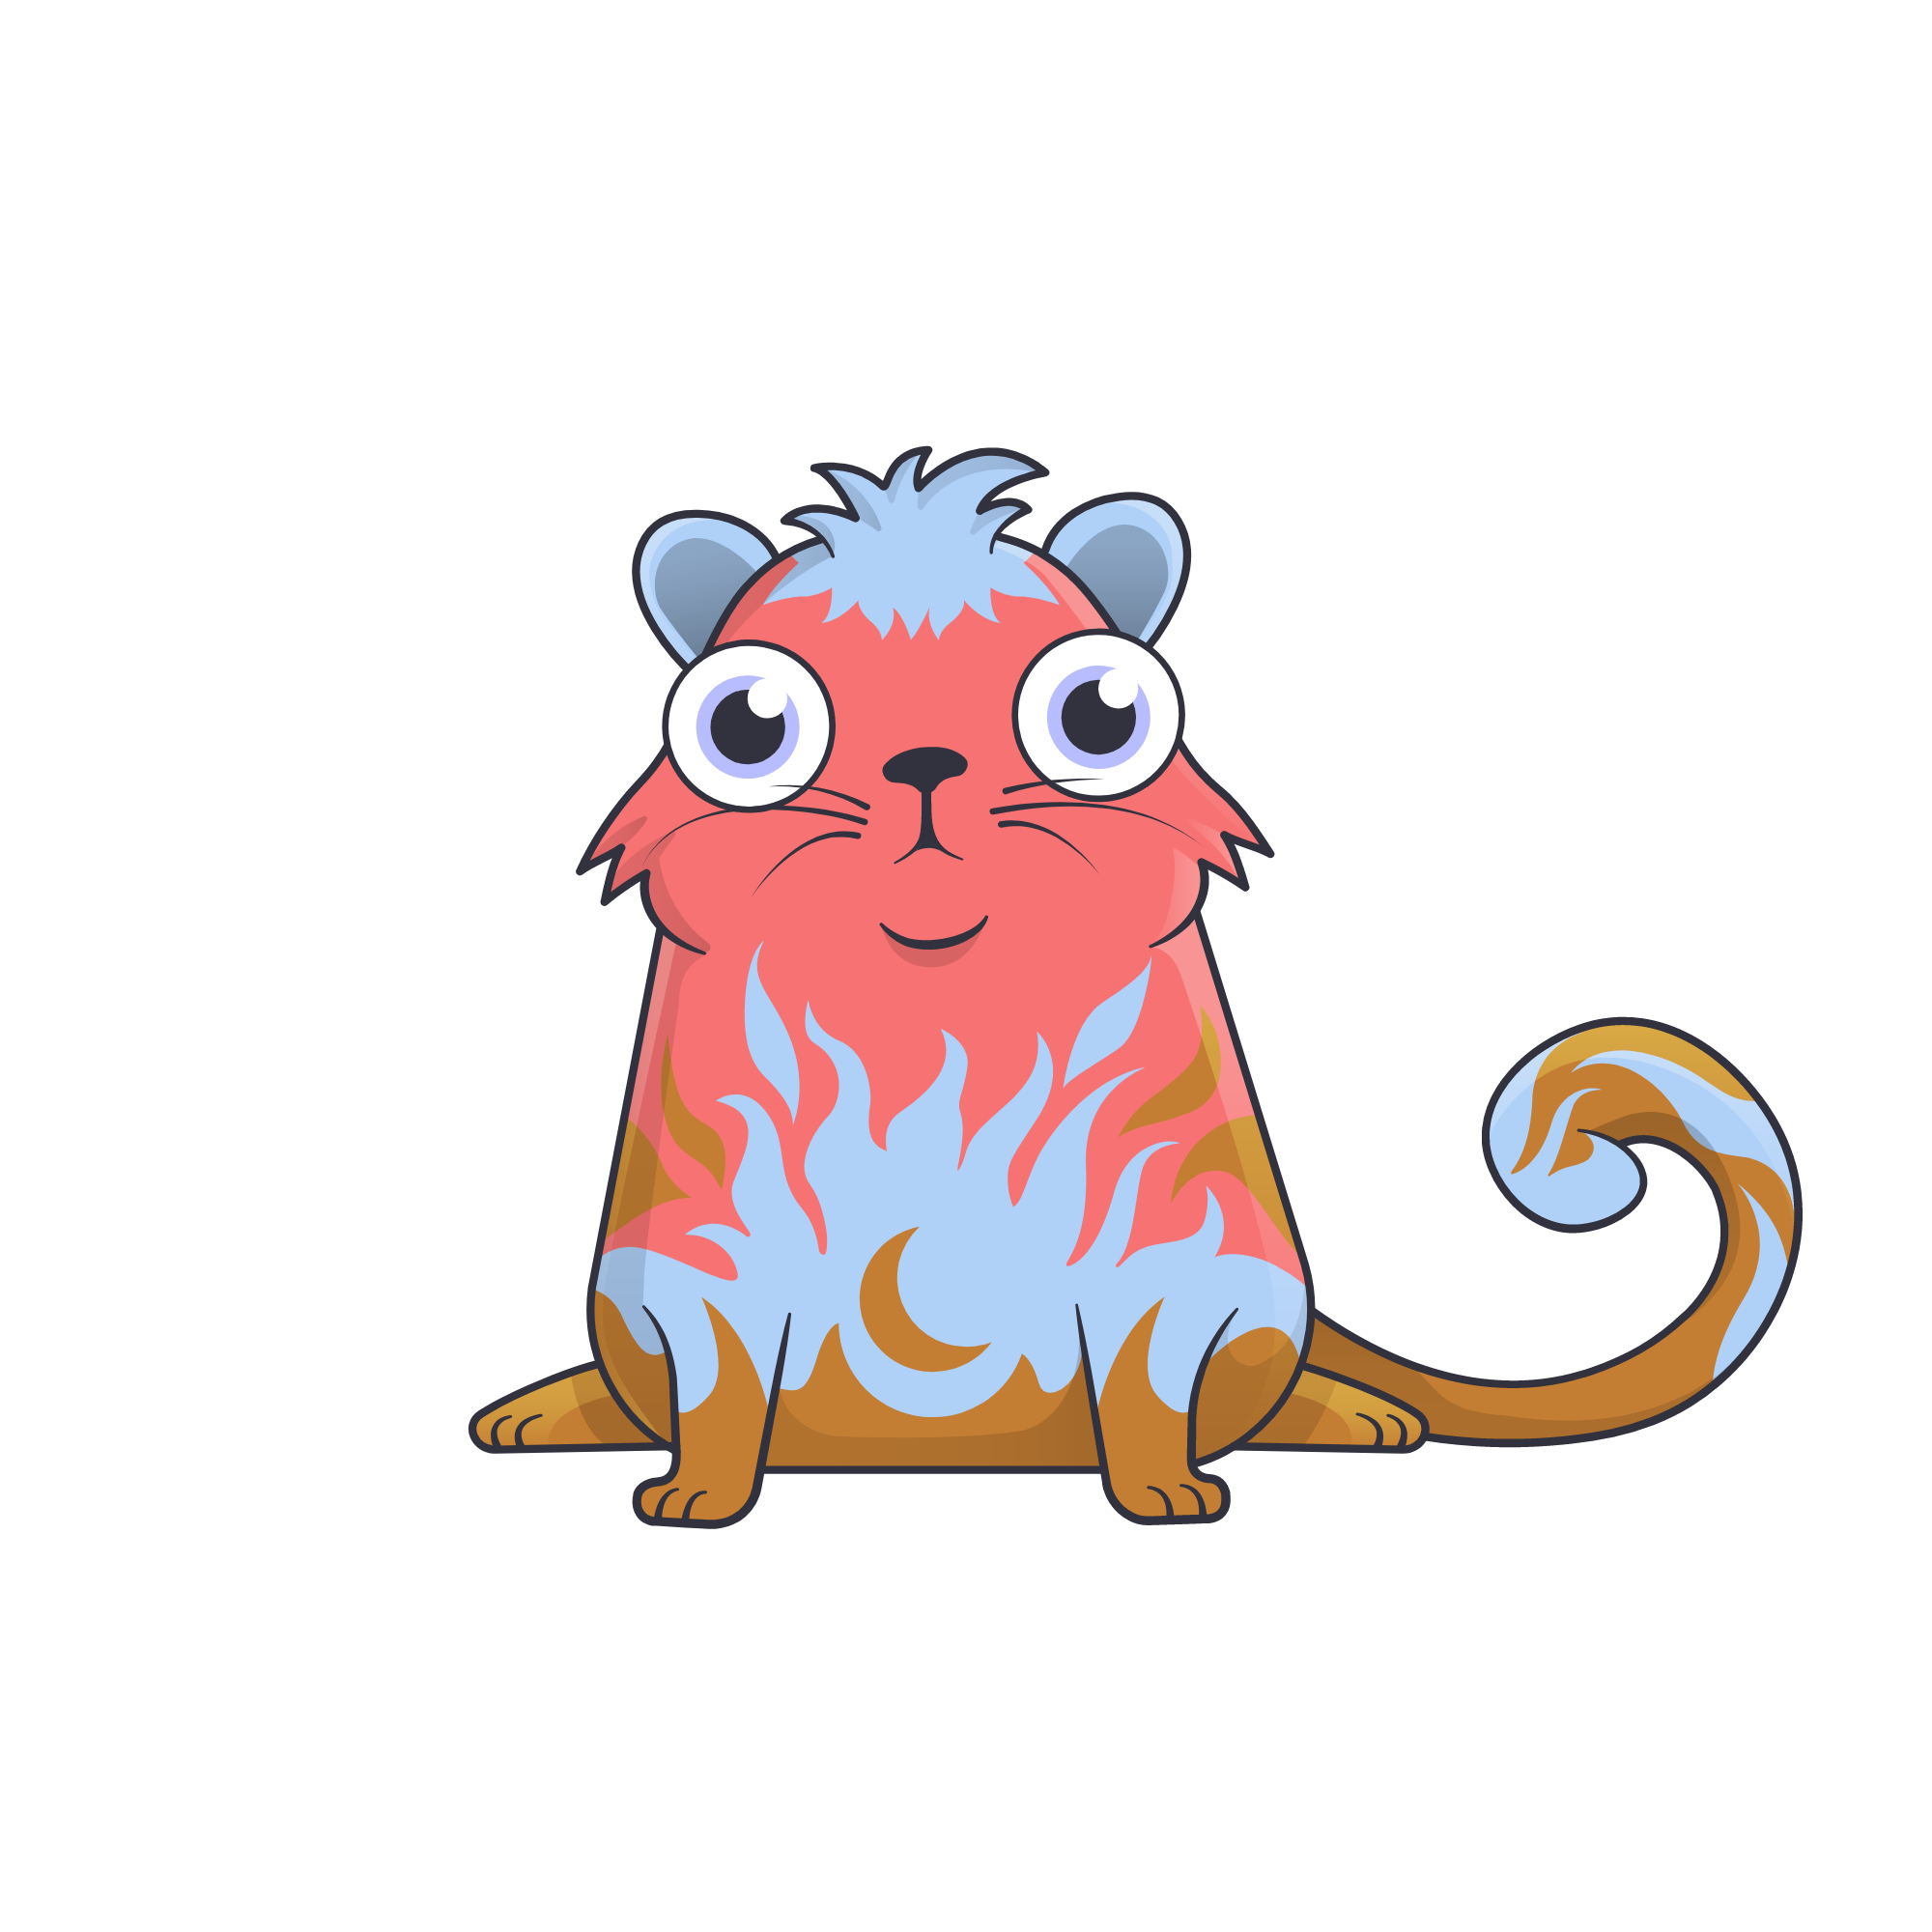 cryptokitty #1633008